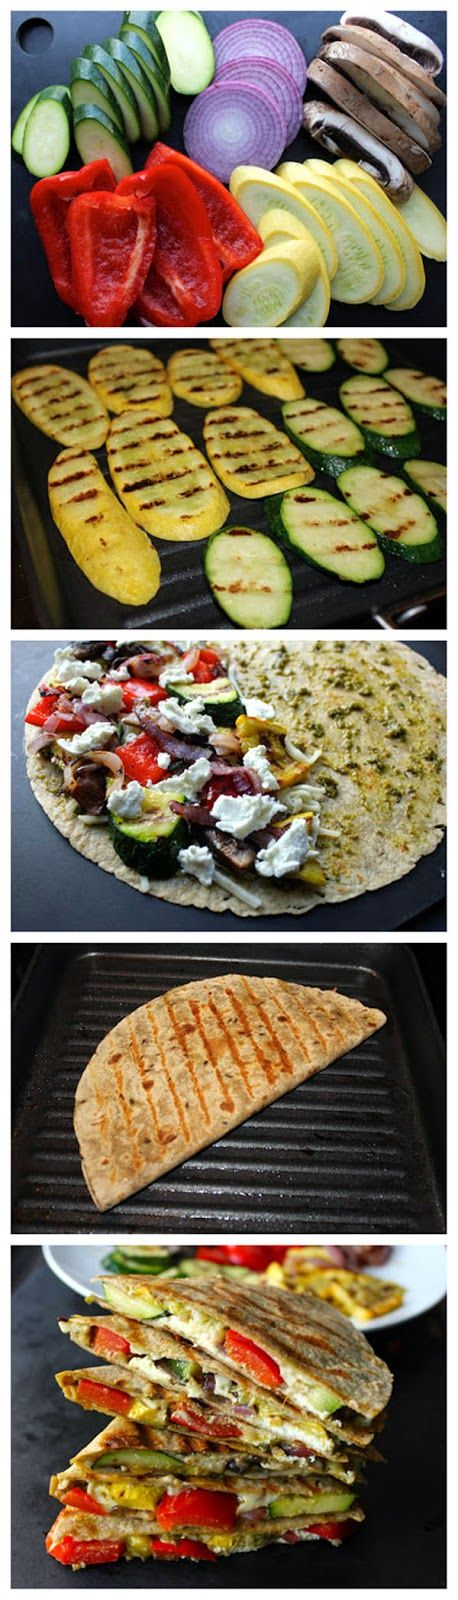 Grilled Vegetable Quesadillas with Goat Cheese and Pesto recipe. Pin now, check later.